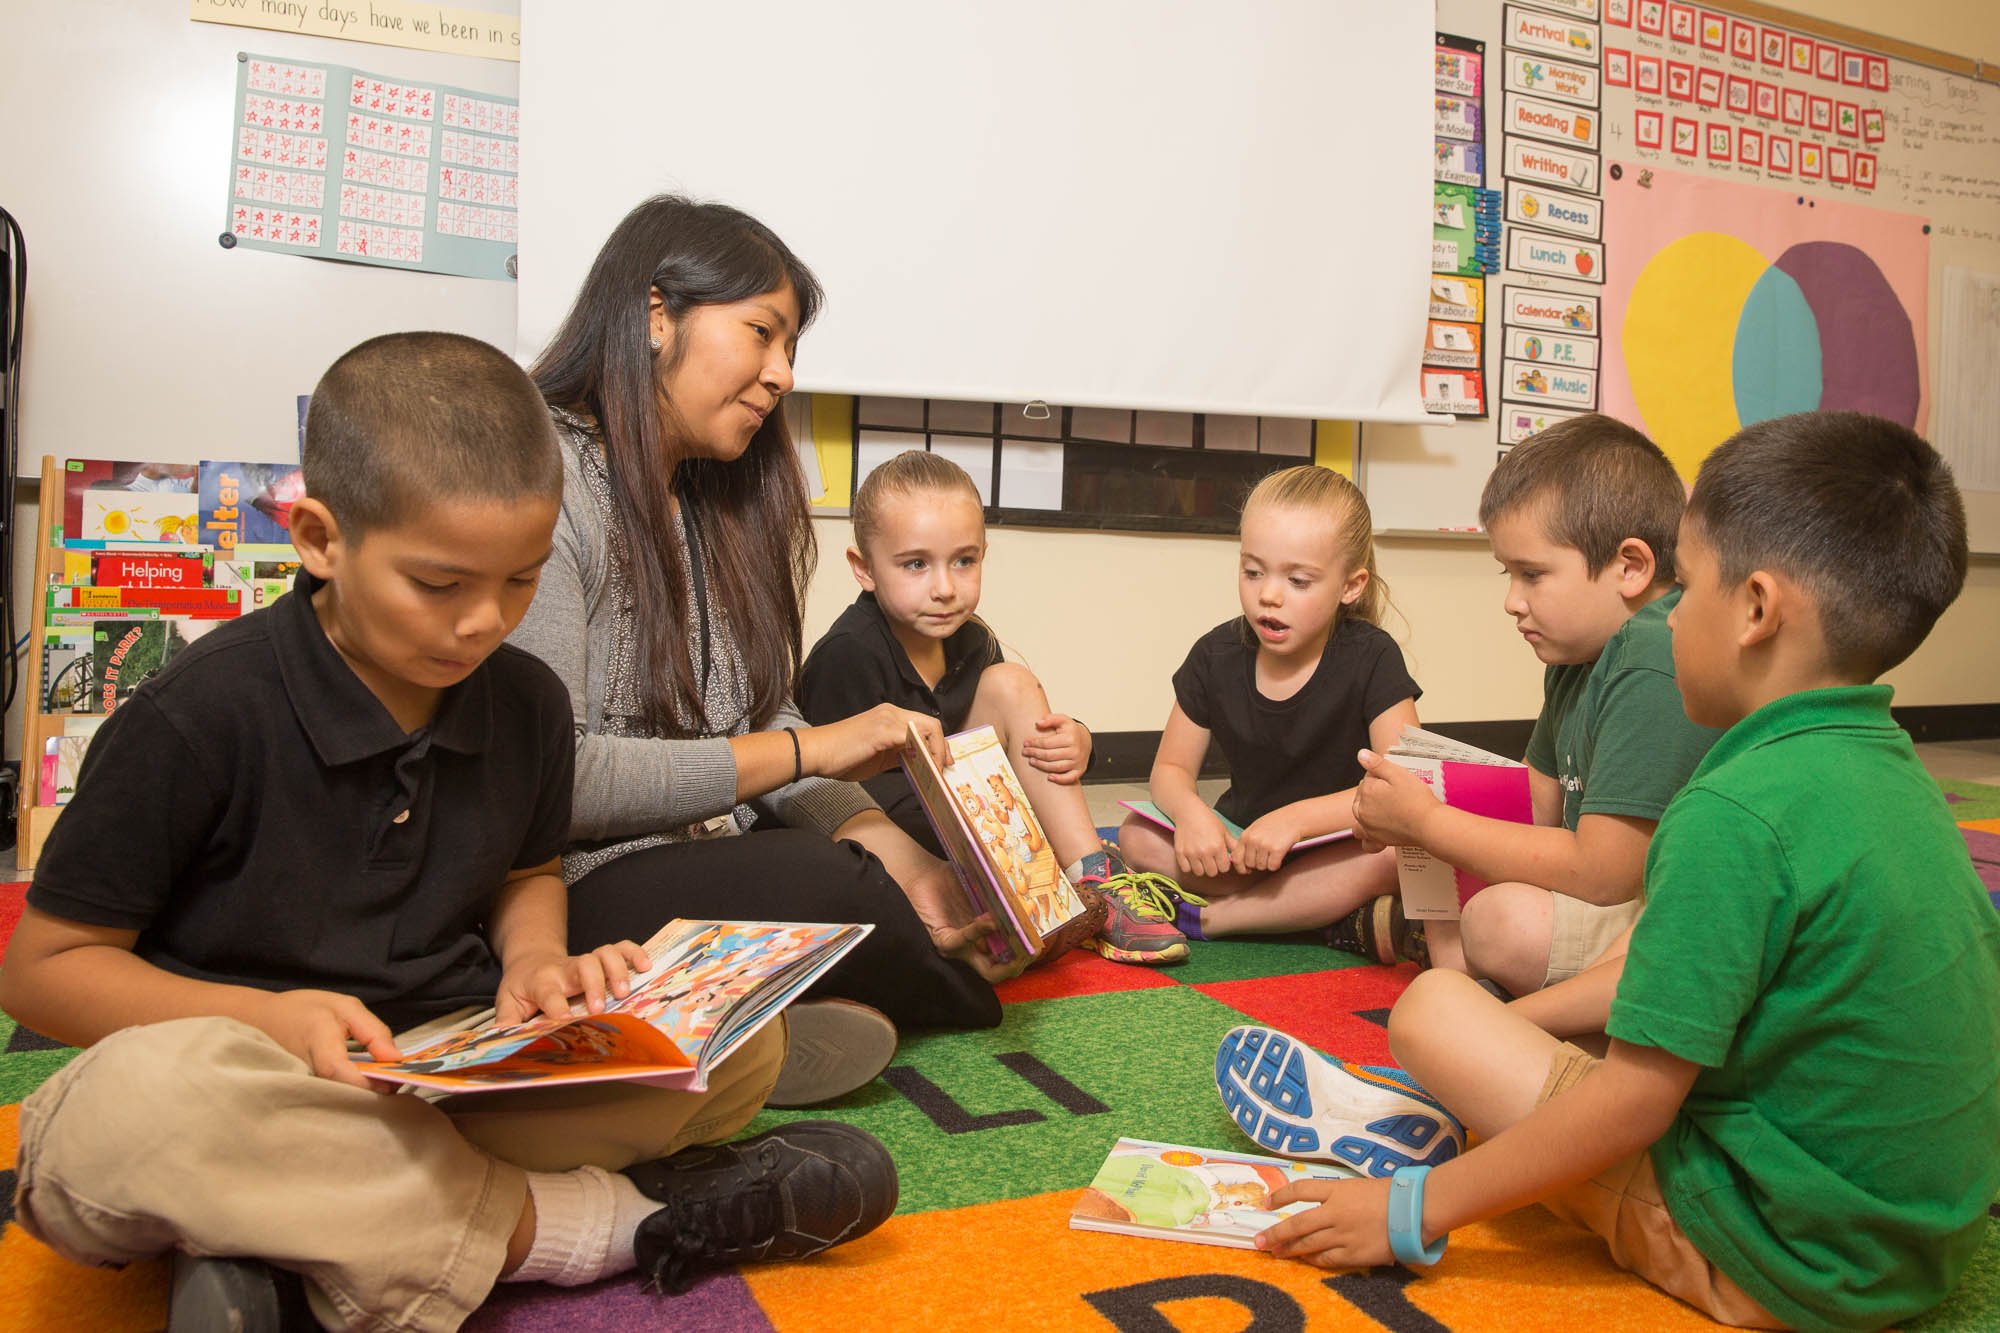 Teacher reading in a classroom to 5 students